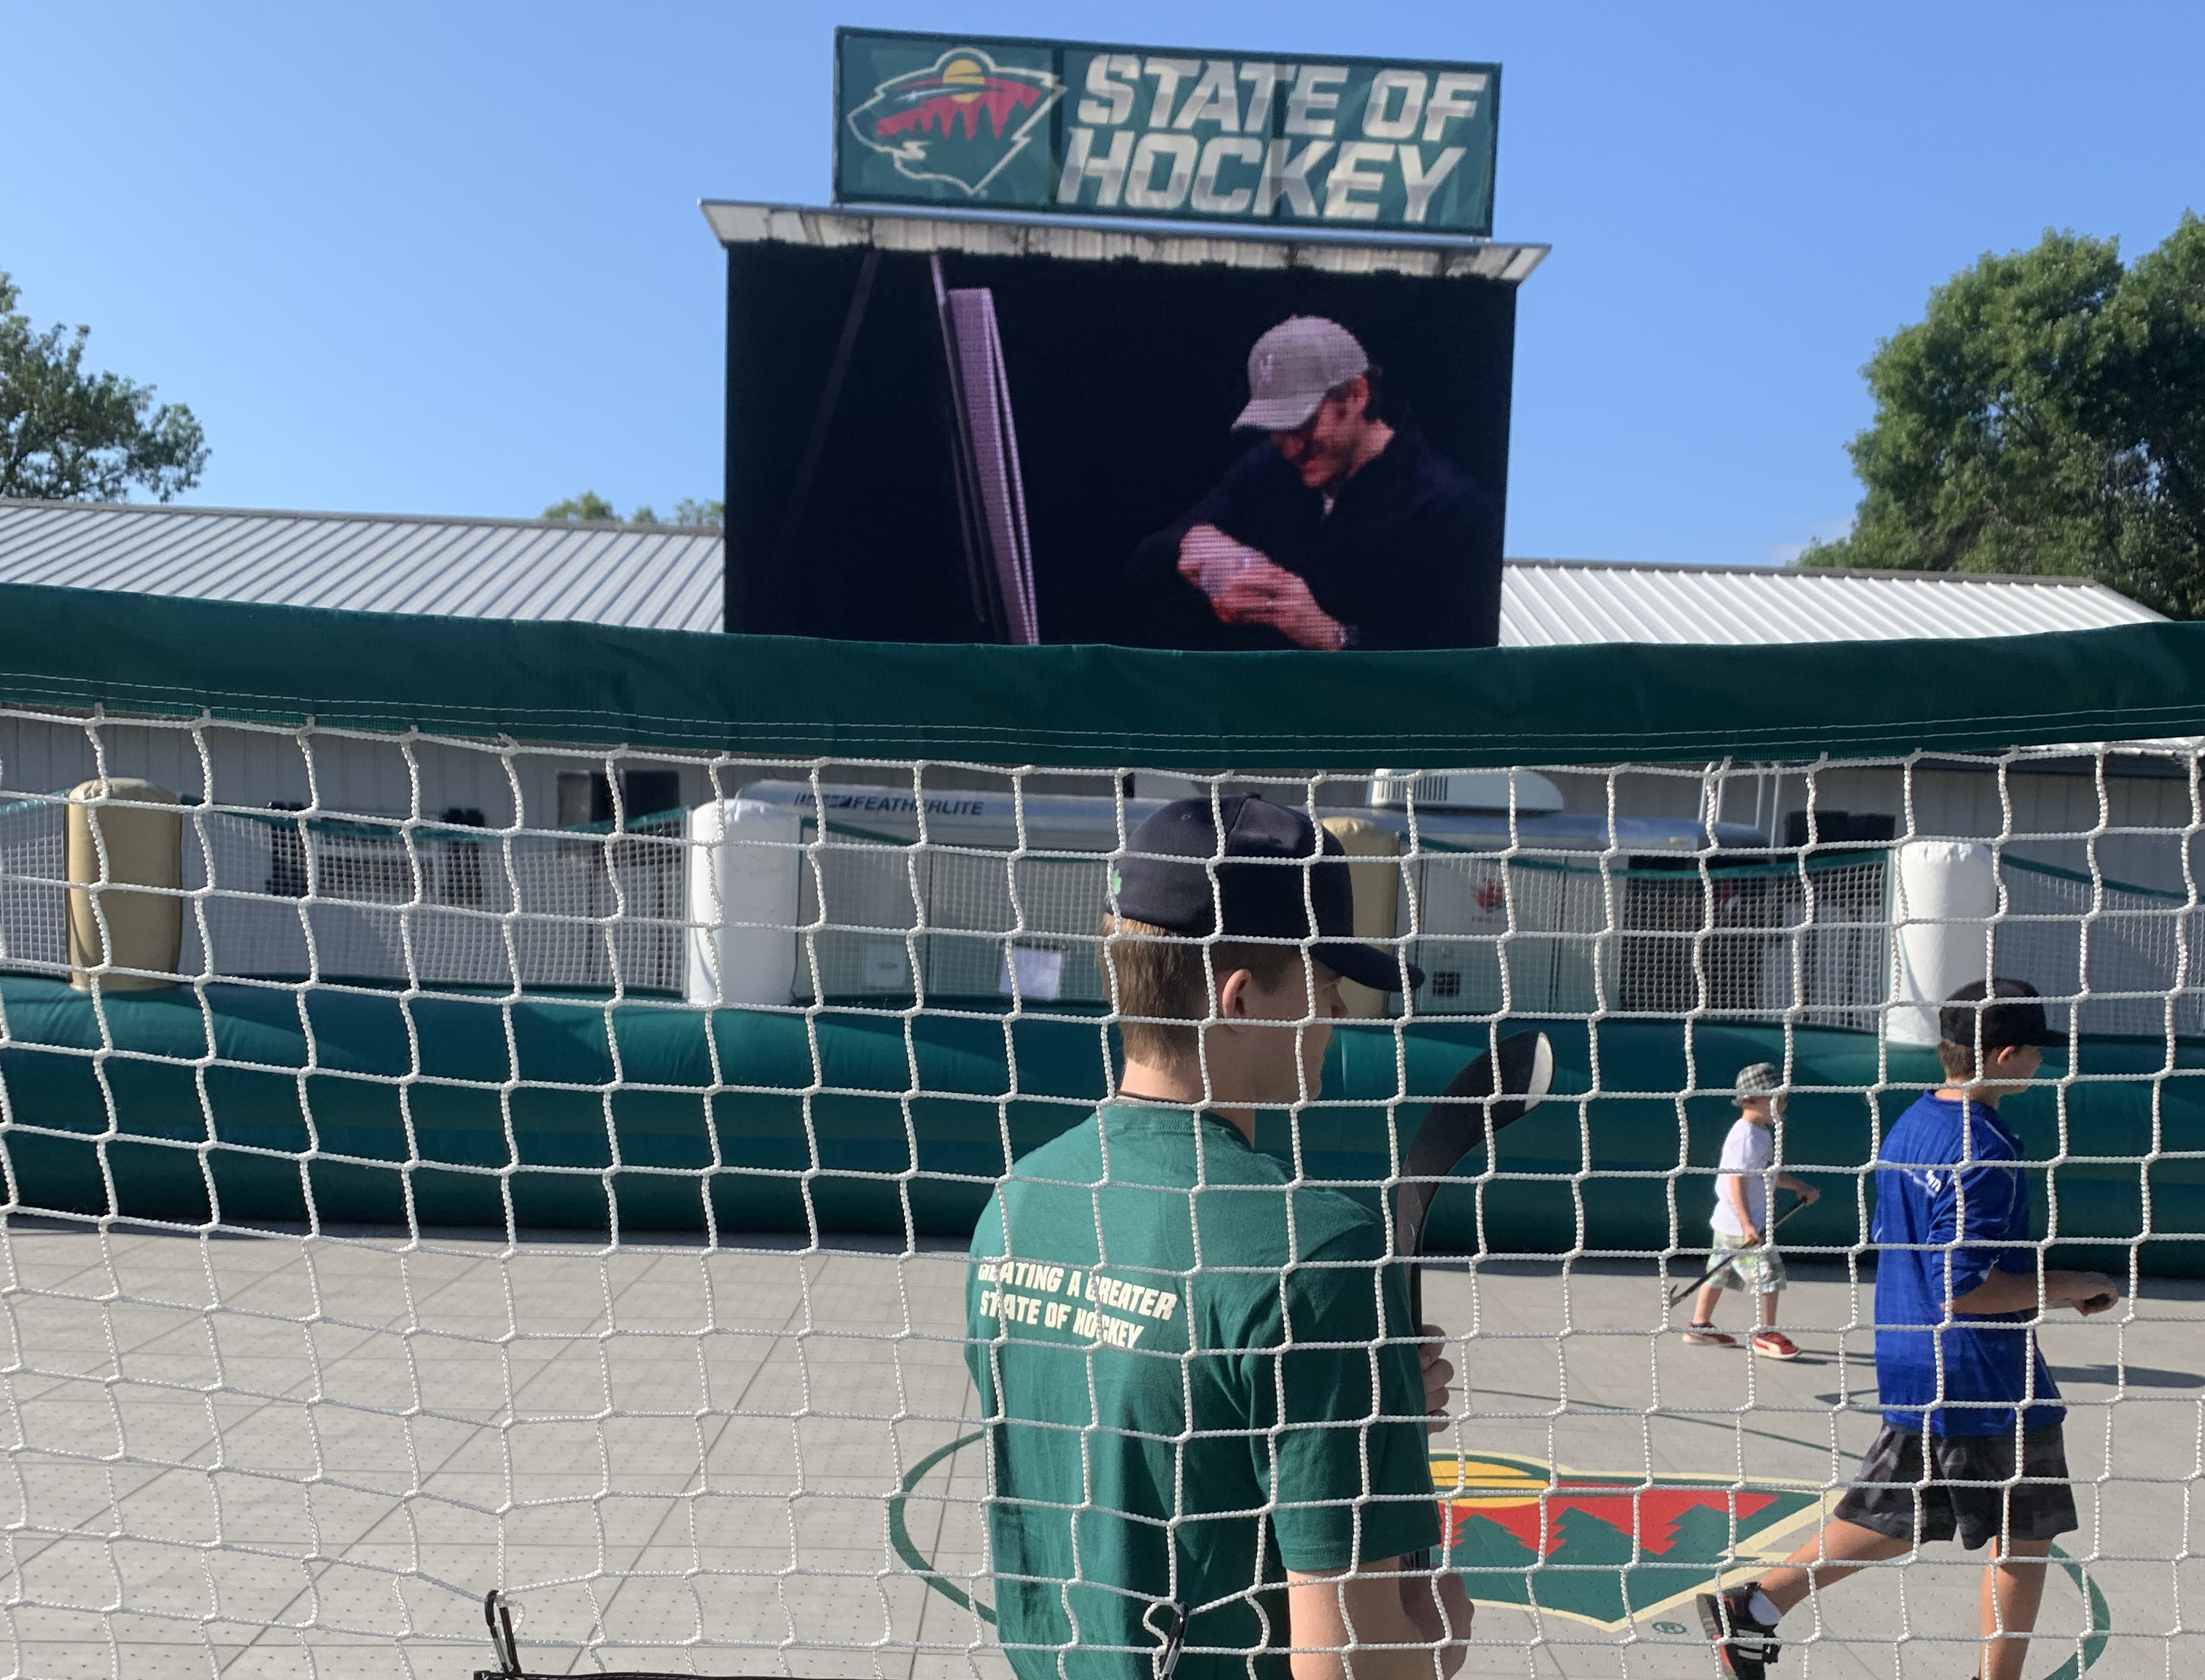 mobile led big screen video wall jumbotron for outdoor rental for events mn wild mn state fair